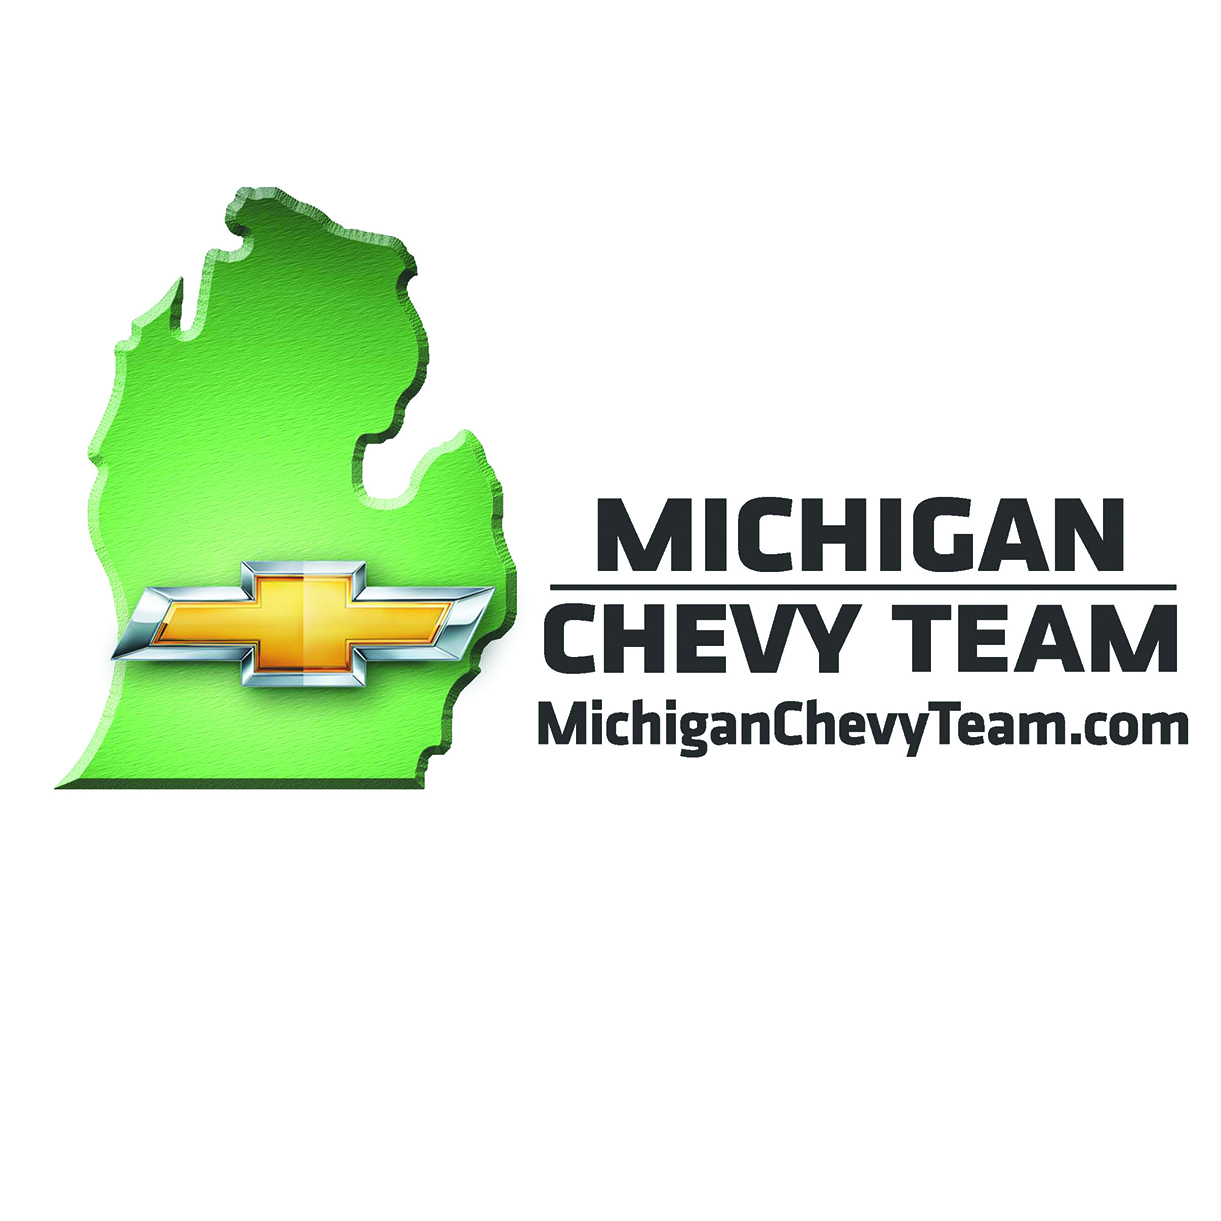 Michigan Chevy Team